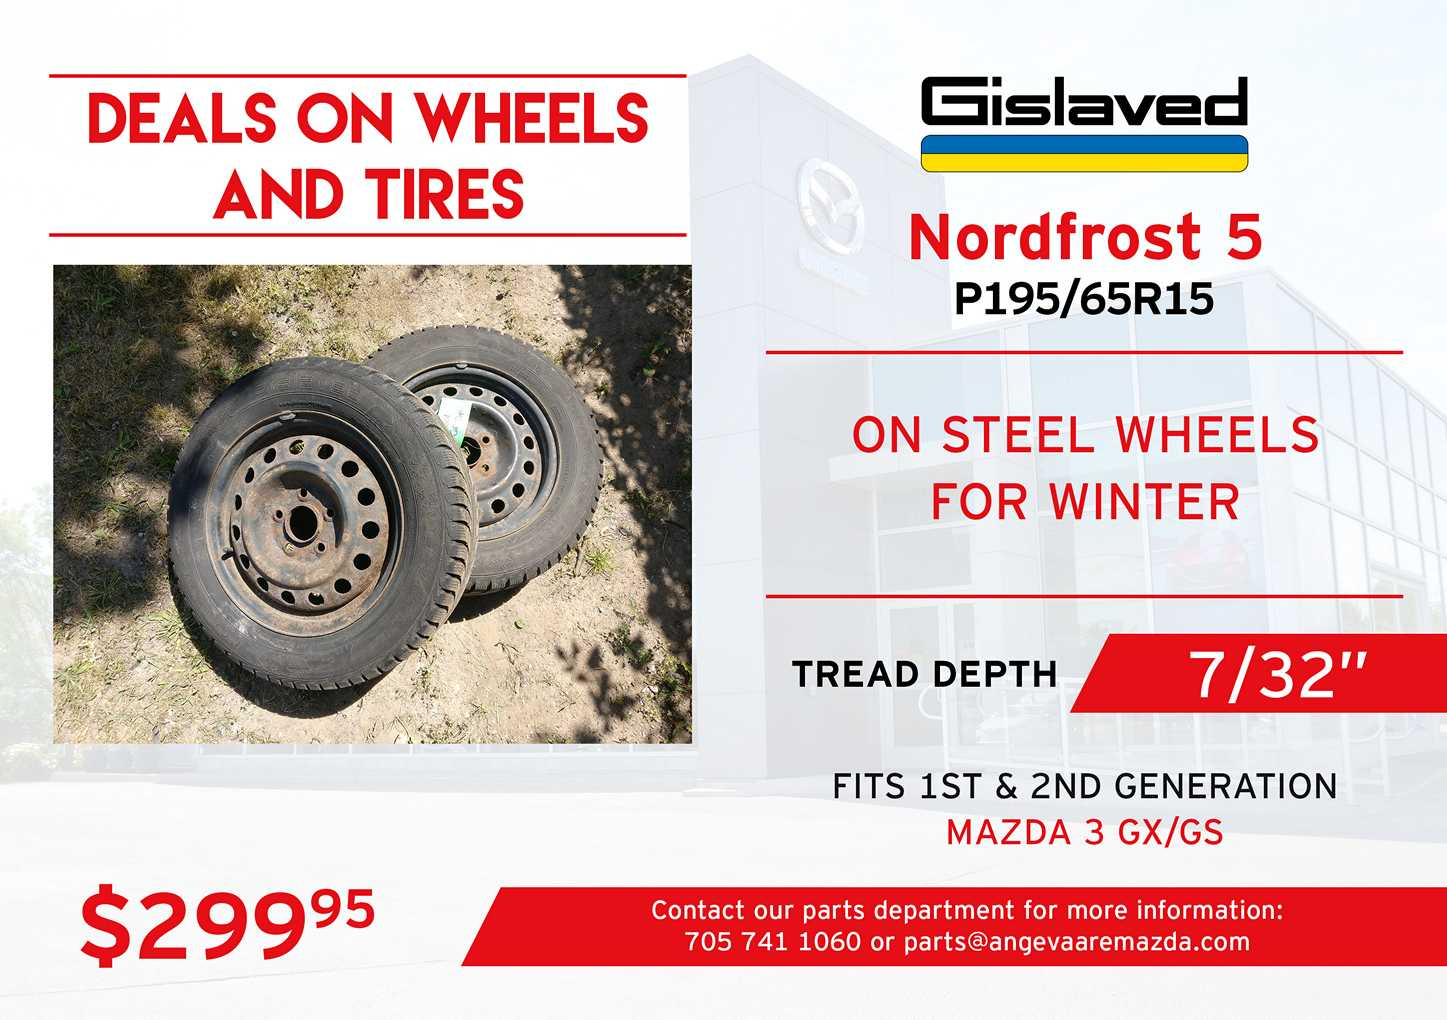 Gislaved Nordfrost 5 winter tires on steel wheels, P195/65R15. With a tread depth of 7/32